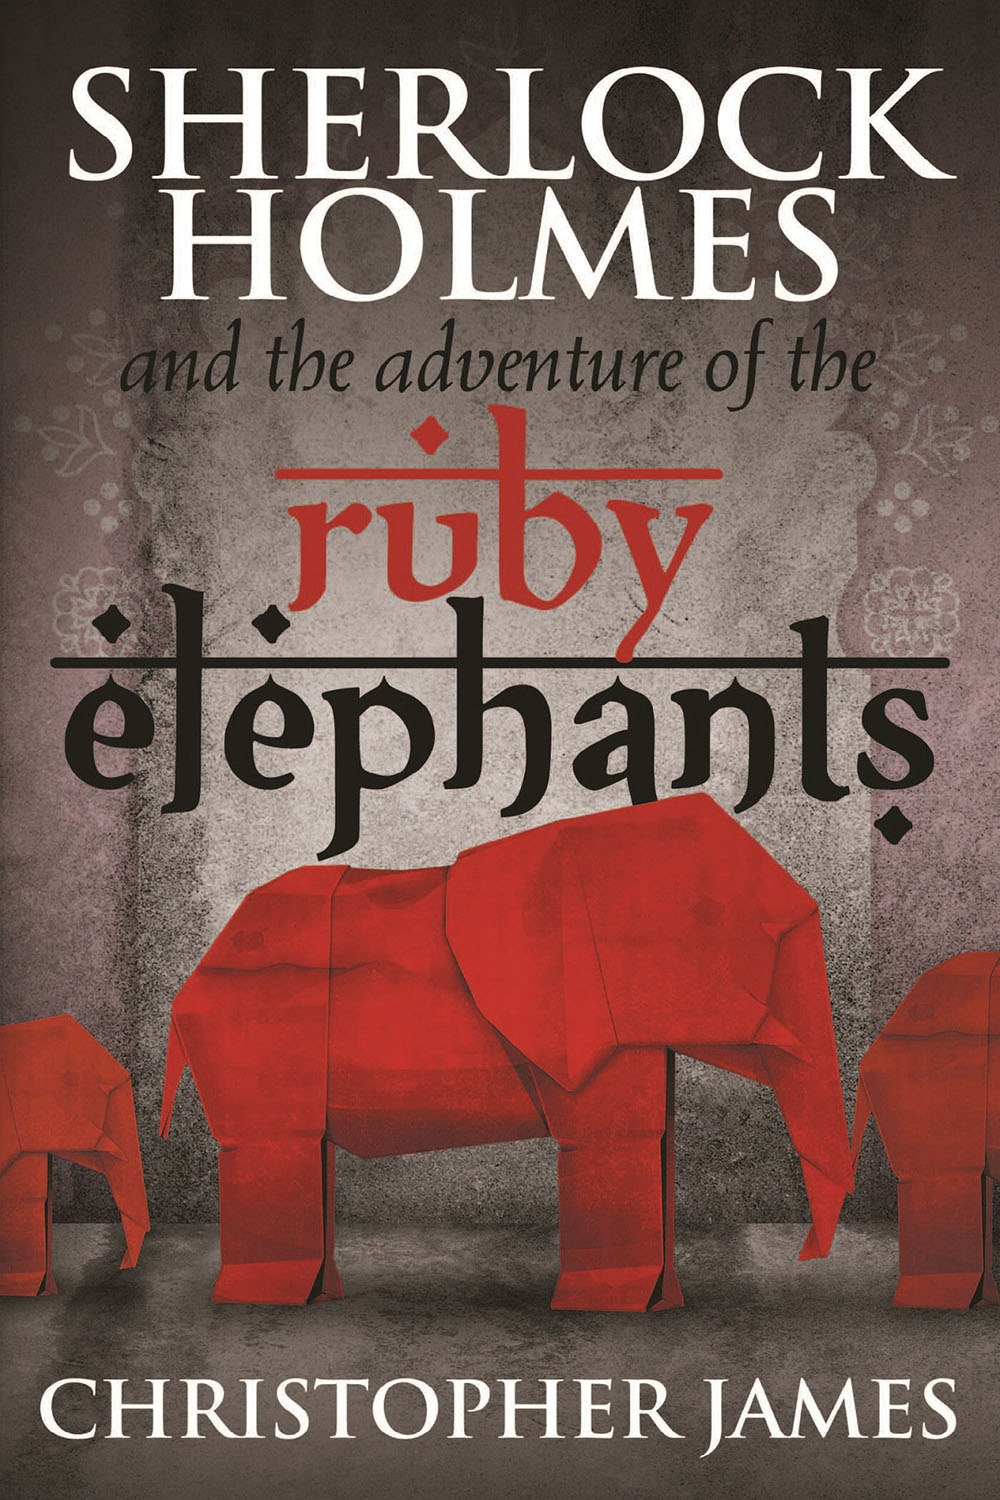 James, Christopher - Sherlock Holmes and The Adventure of the Ruby Elephants, ebook